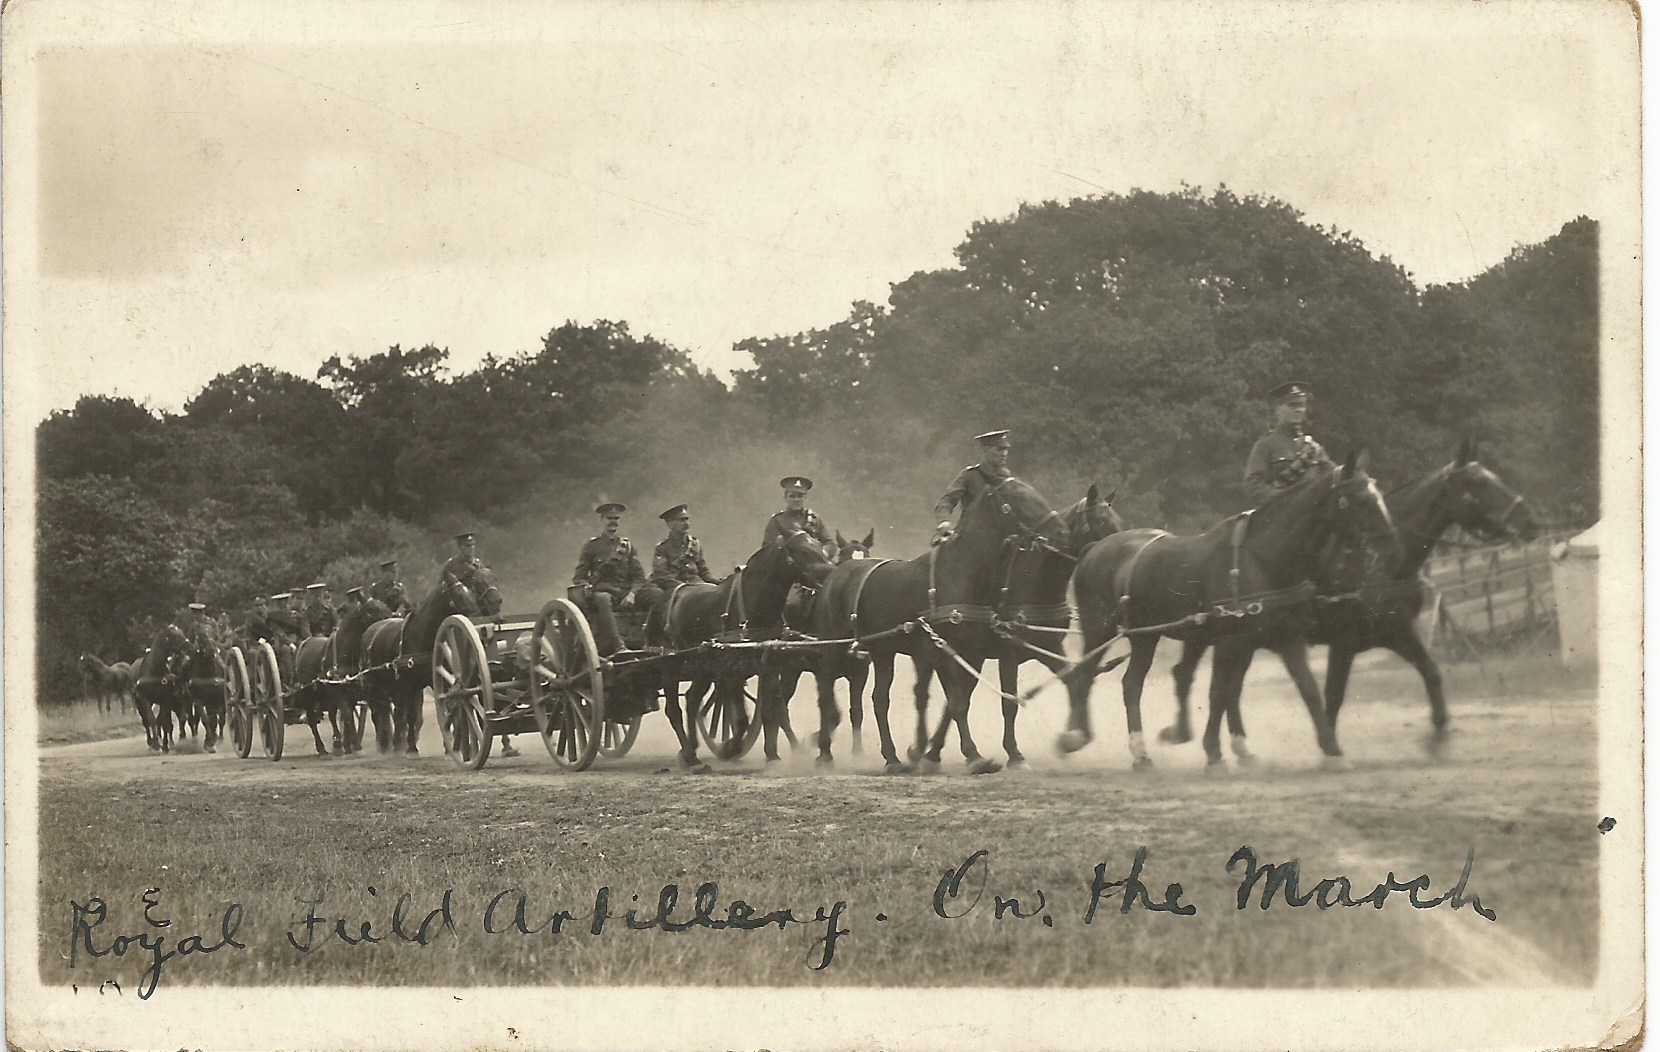 Royal Field Artillery - On the March 1914